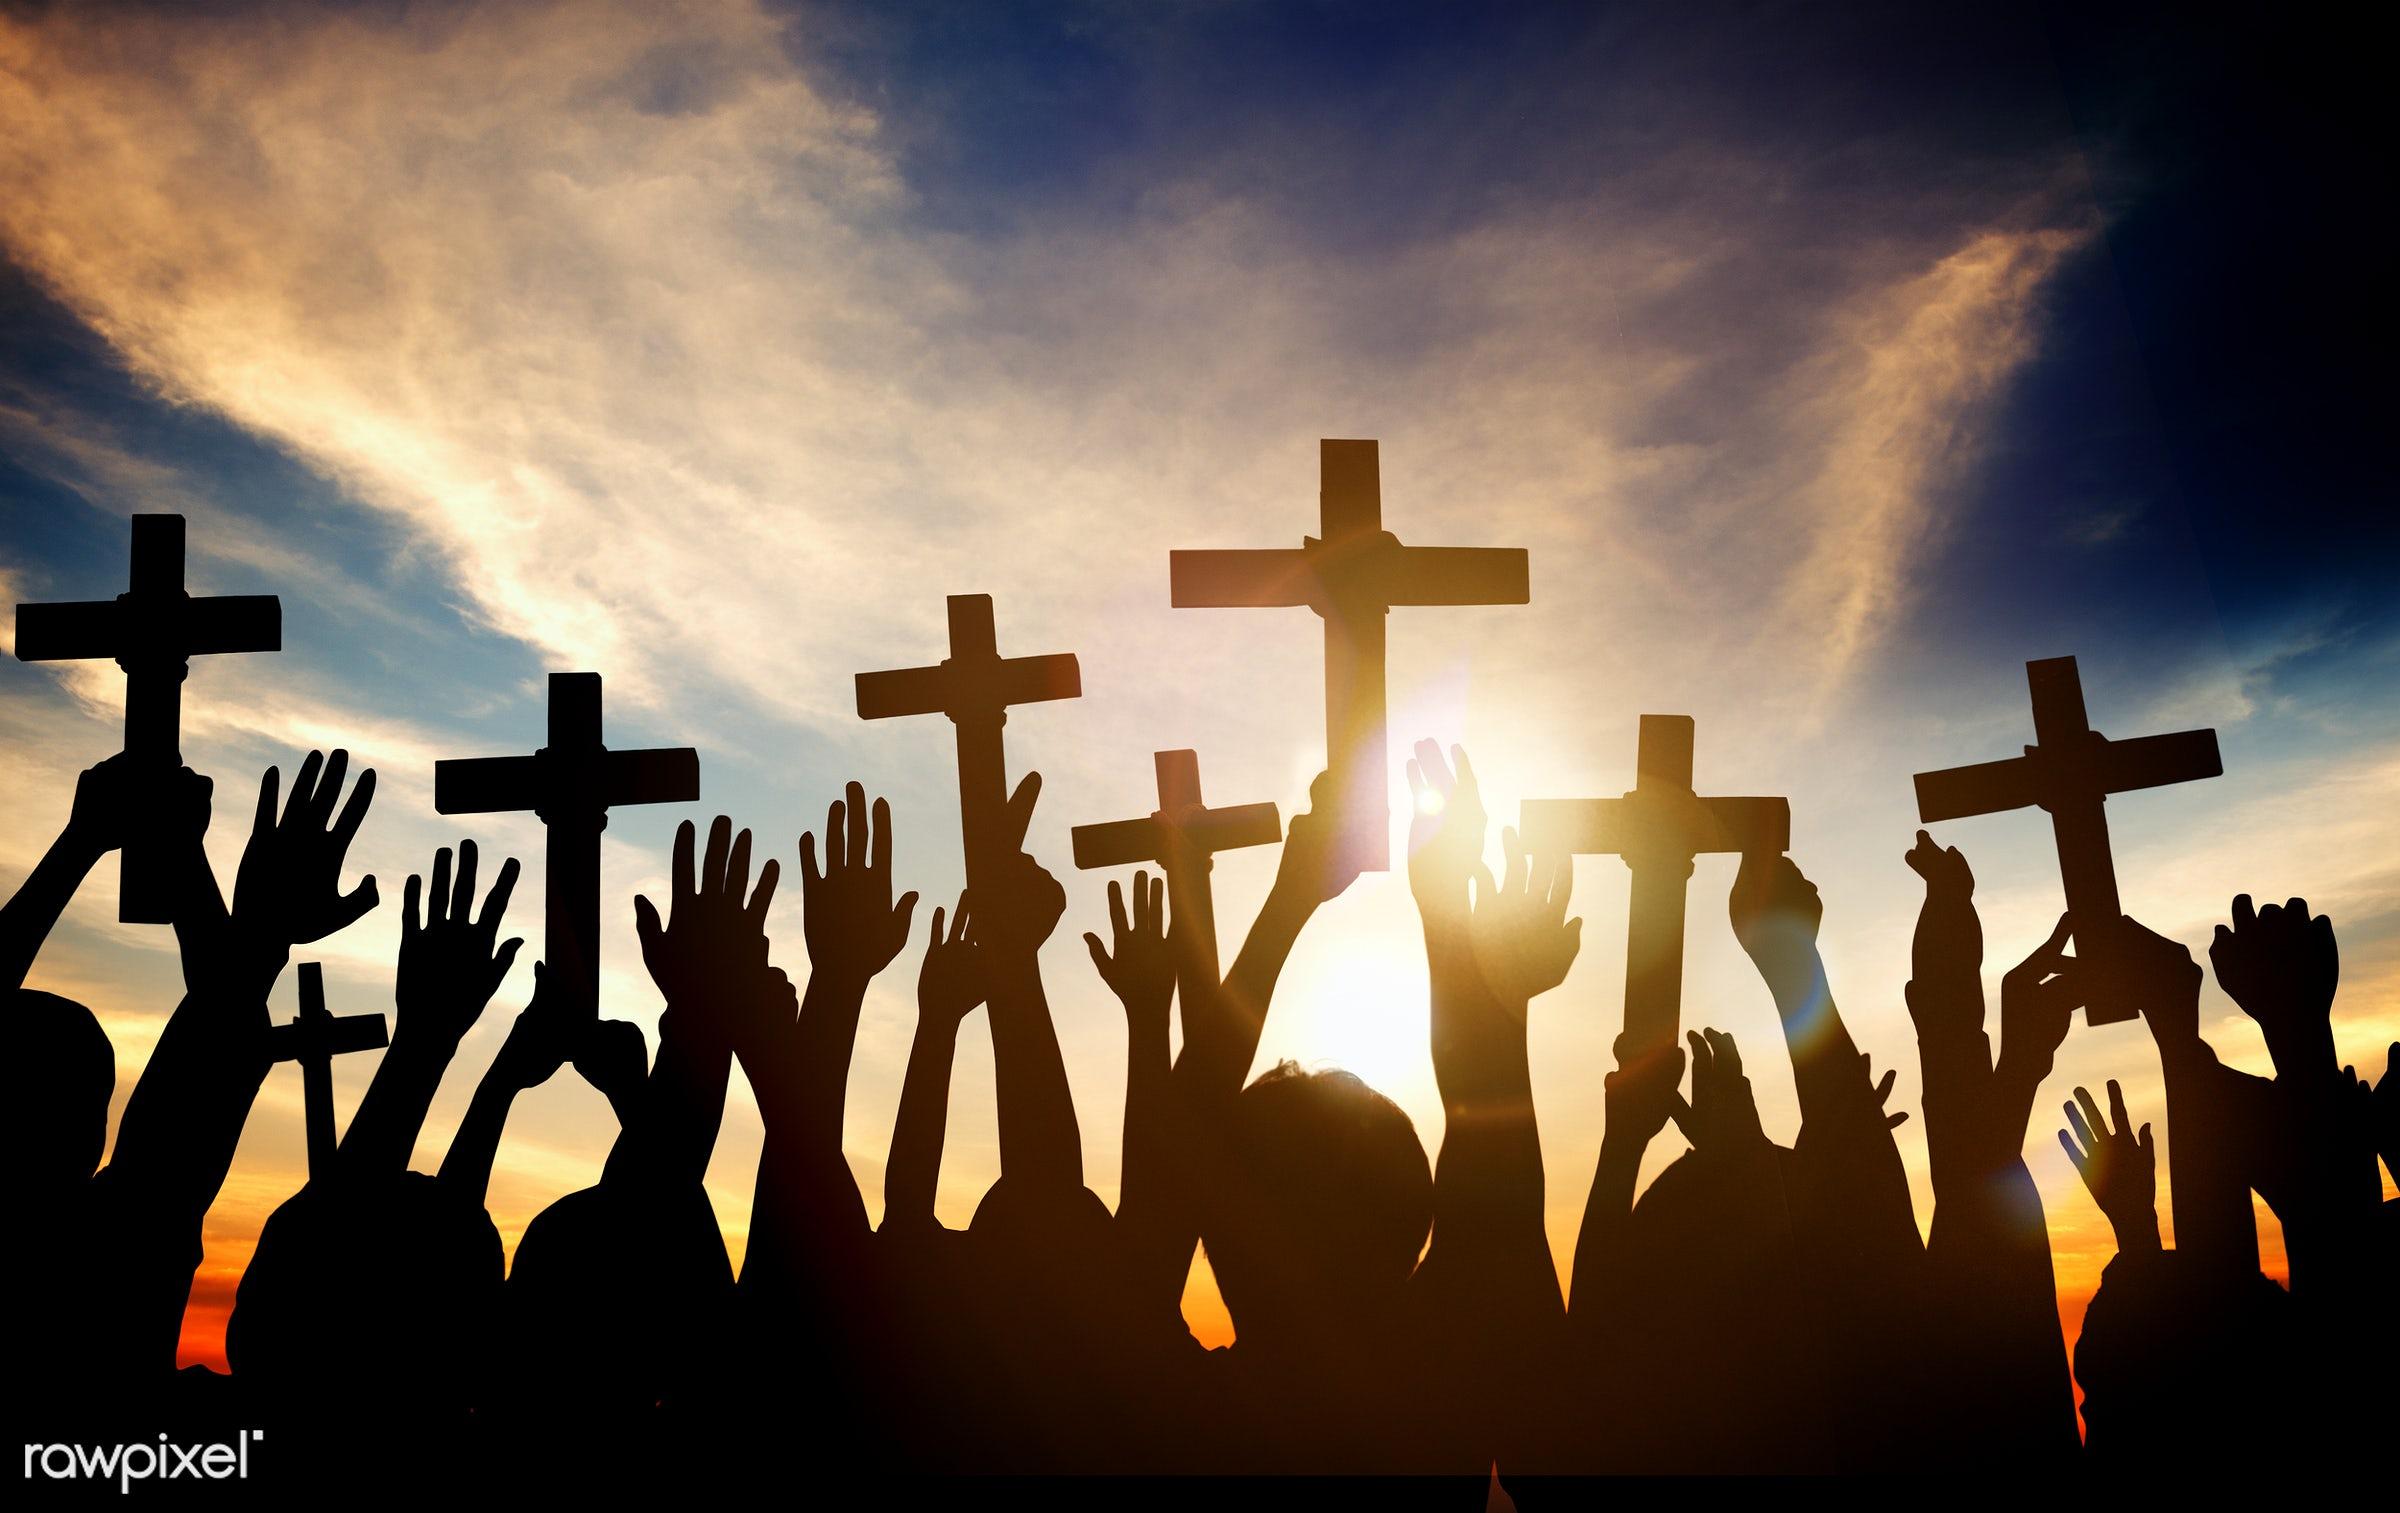 church, applauding, arms outstretched, arms raised, aspiration, back lit, believe, christian, christianity, cloud,...